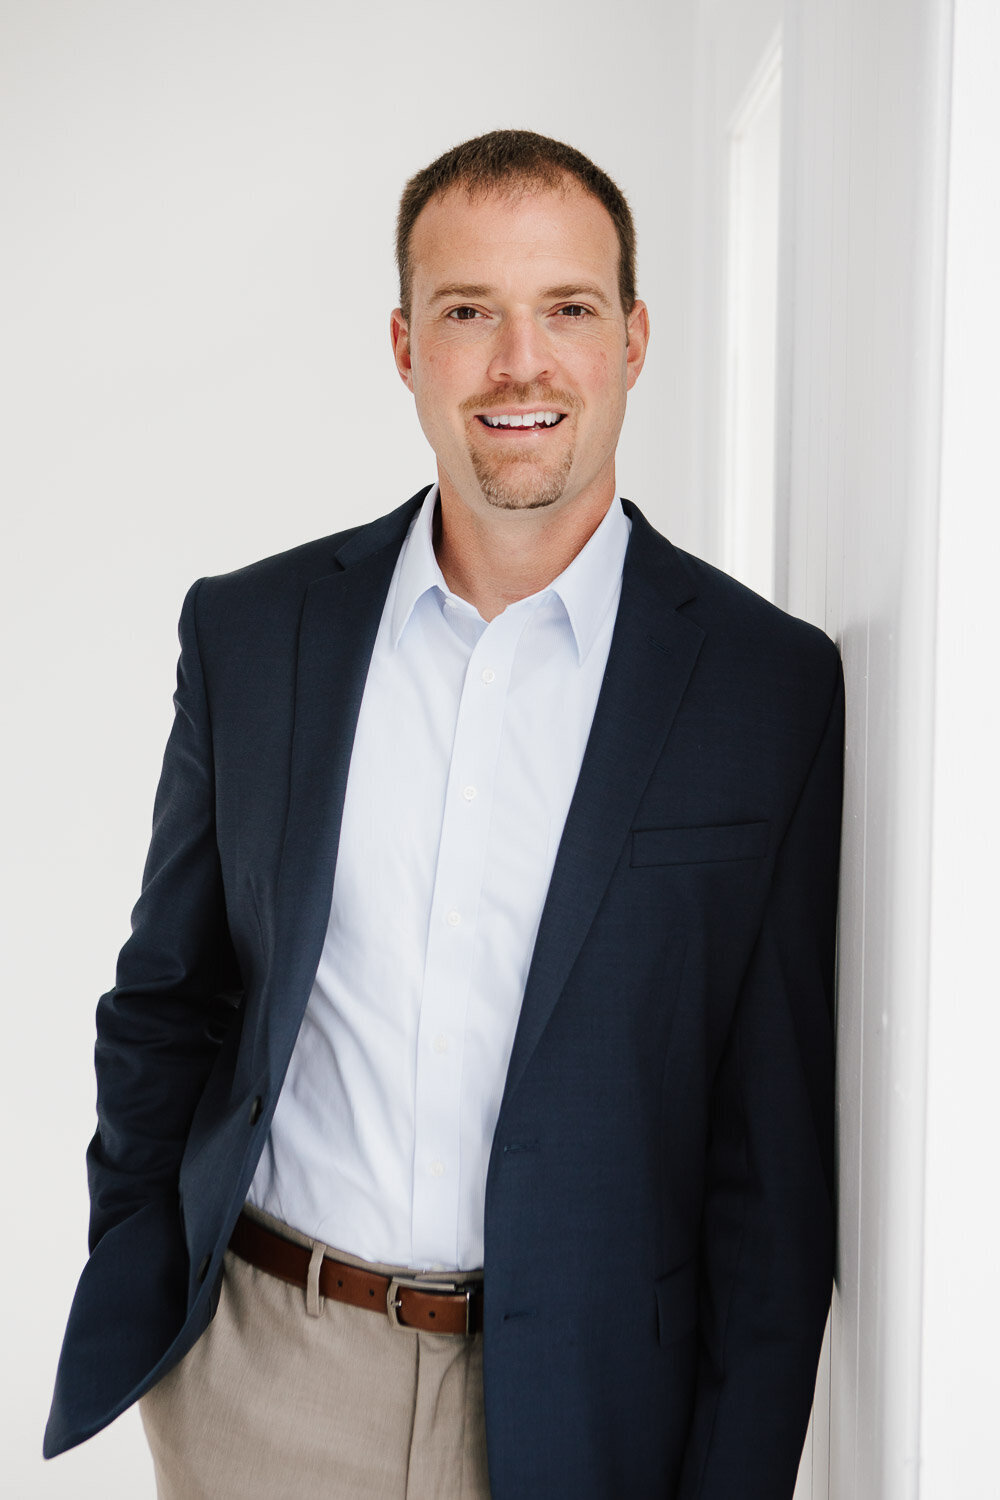 Business headshot of man in suit leaning against wall